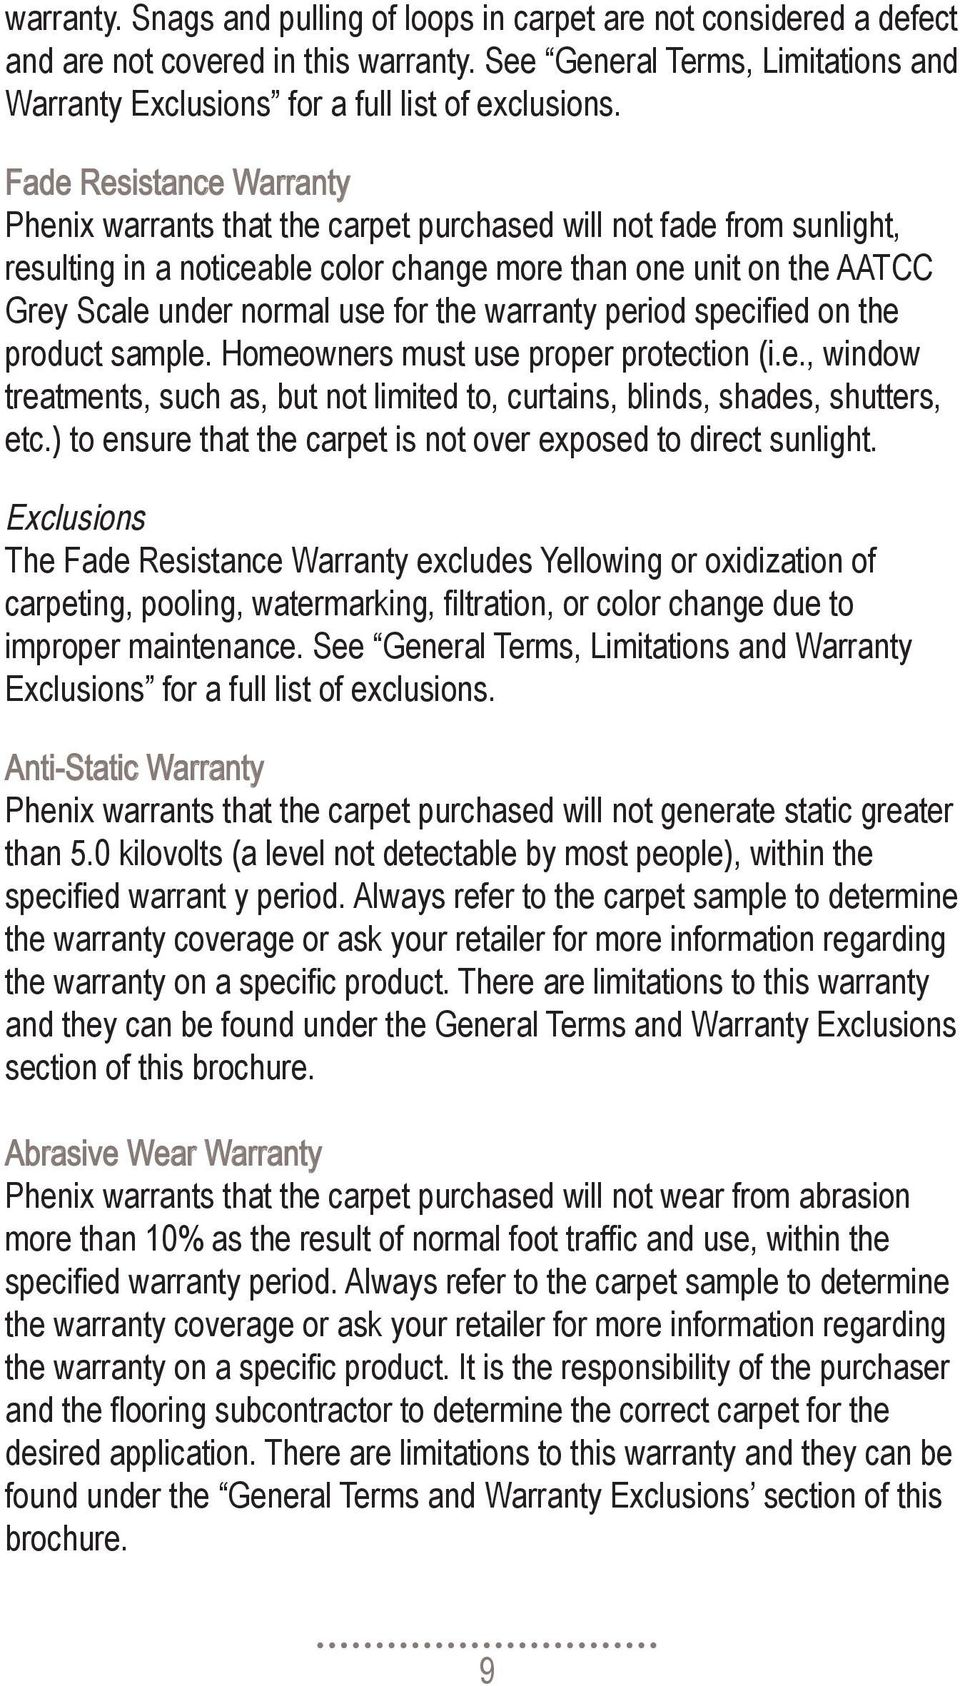 the warranty period specified on the product sample. Homeowners must use proper protection (i.e., window treatments, such as, but not limited to, curtains, blinds, shades, shutters, etc.